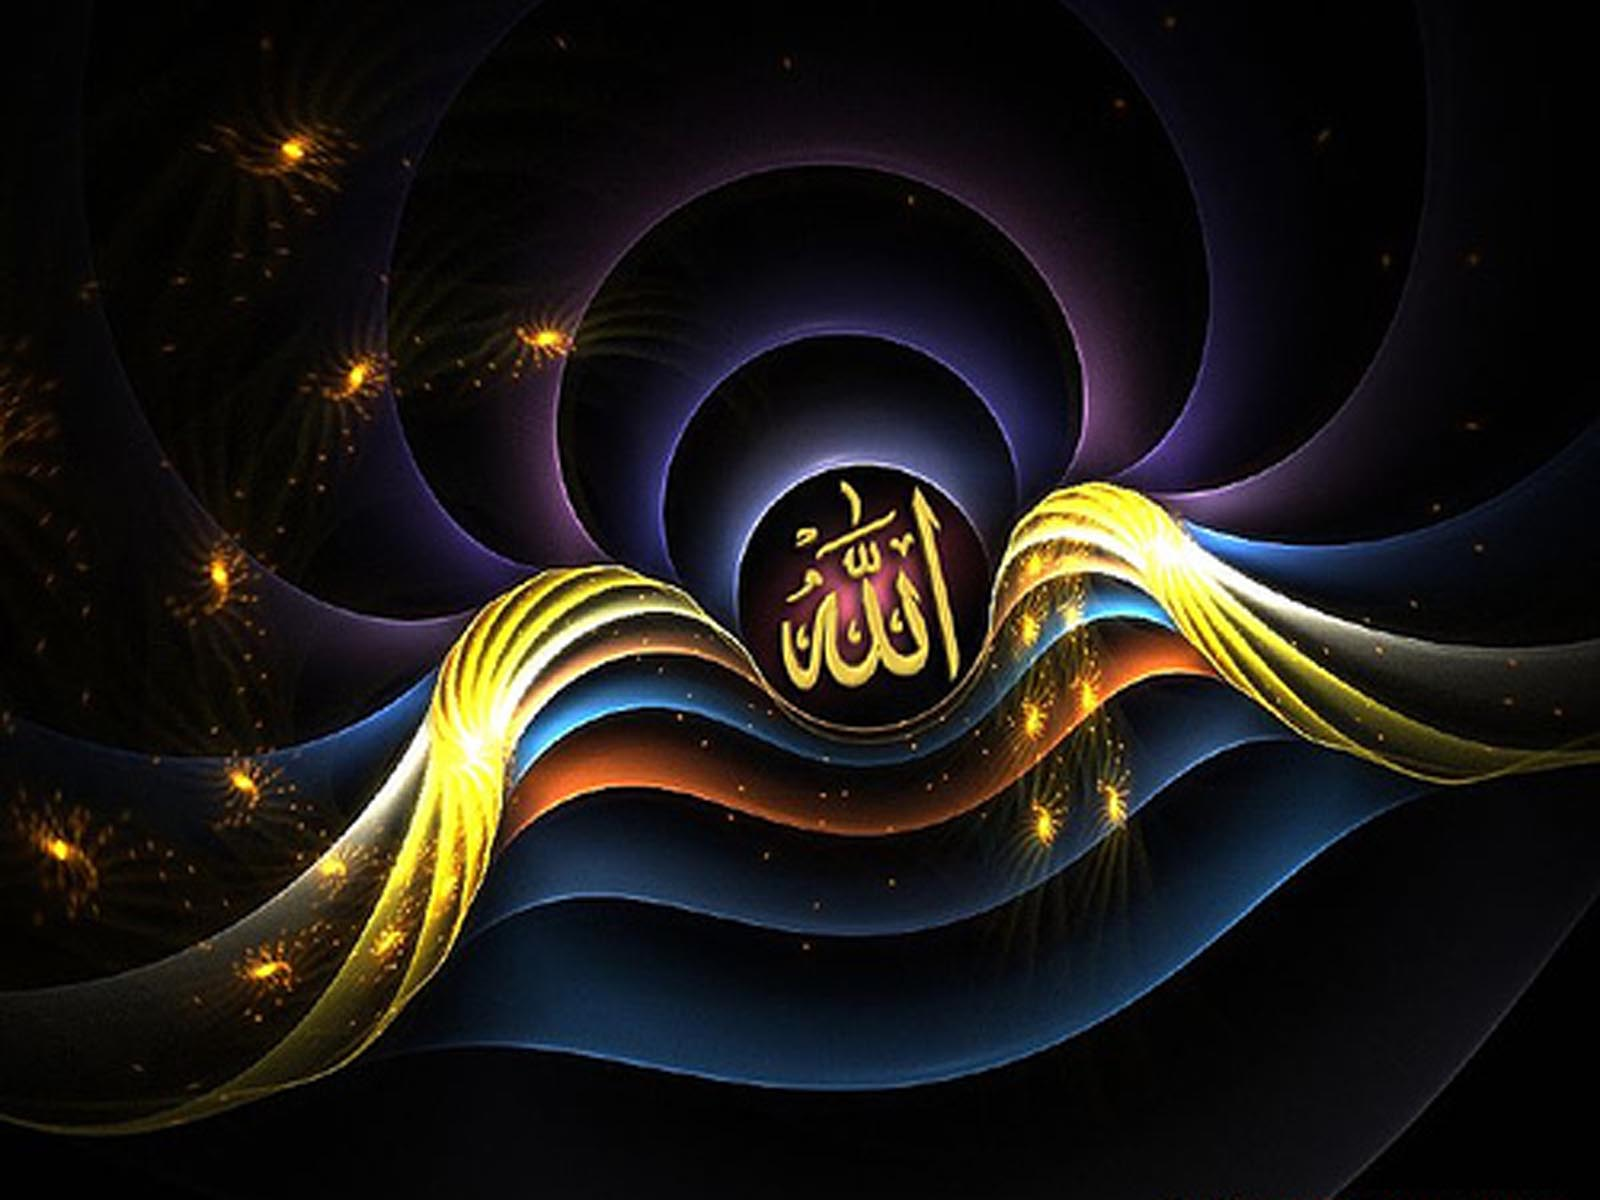 50 Allah Name Picture Wallpaper On Wallpapersafari